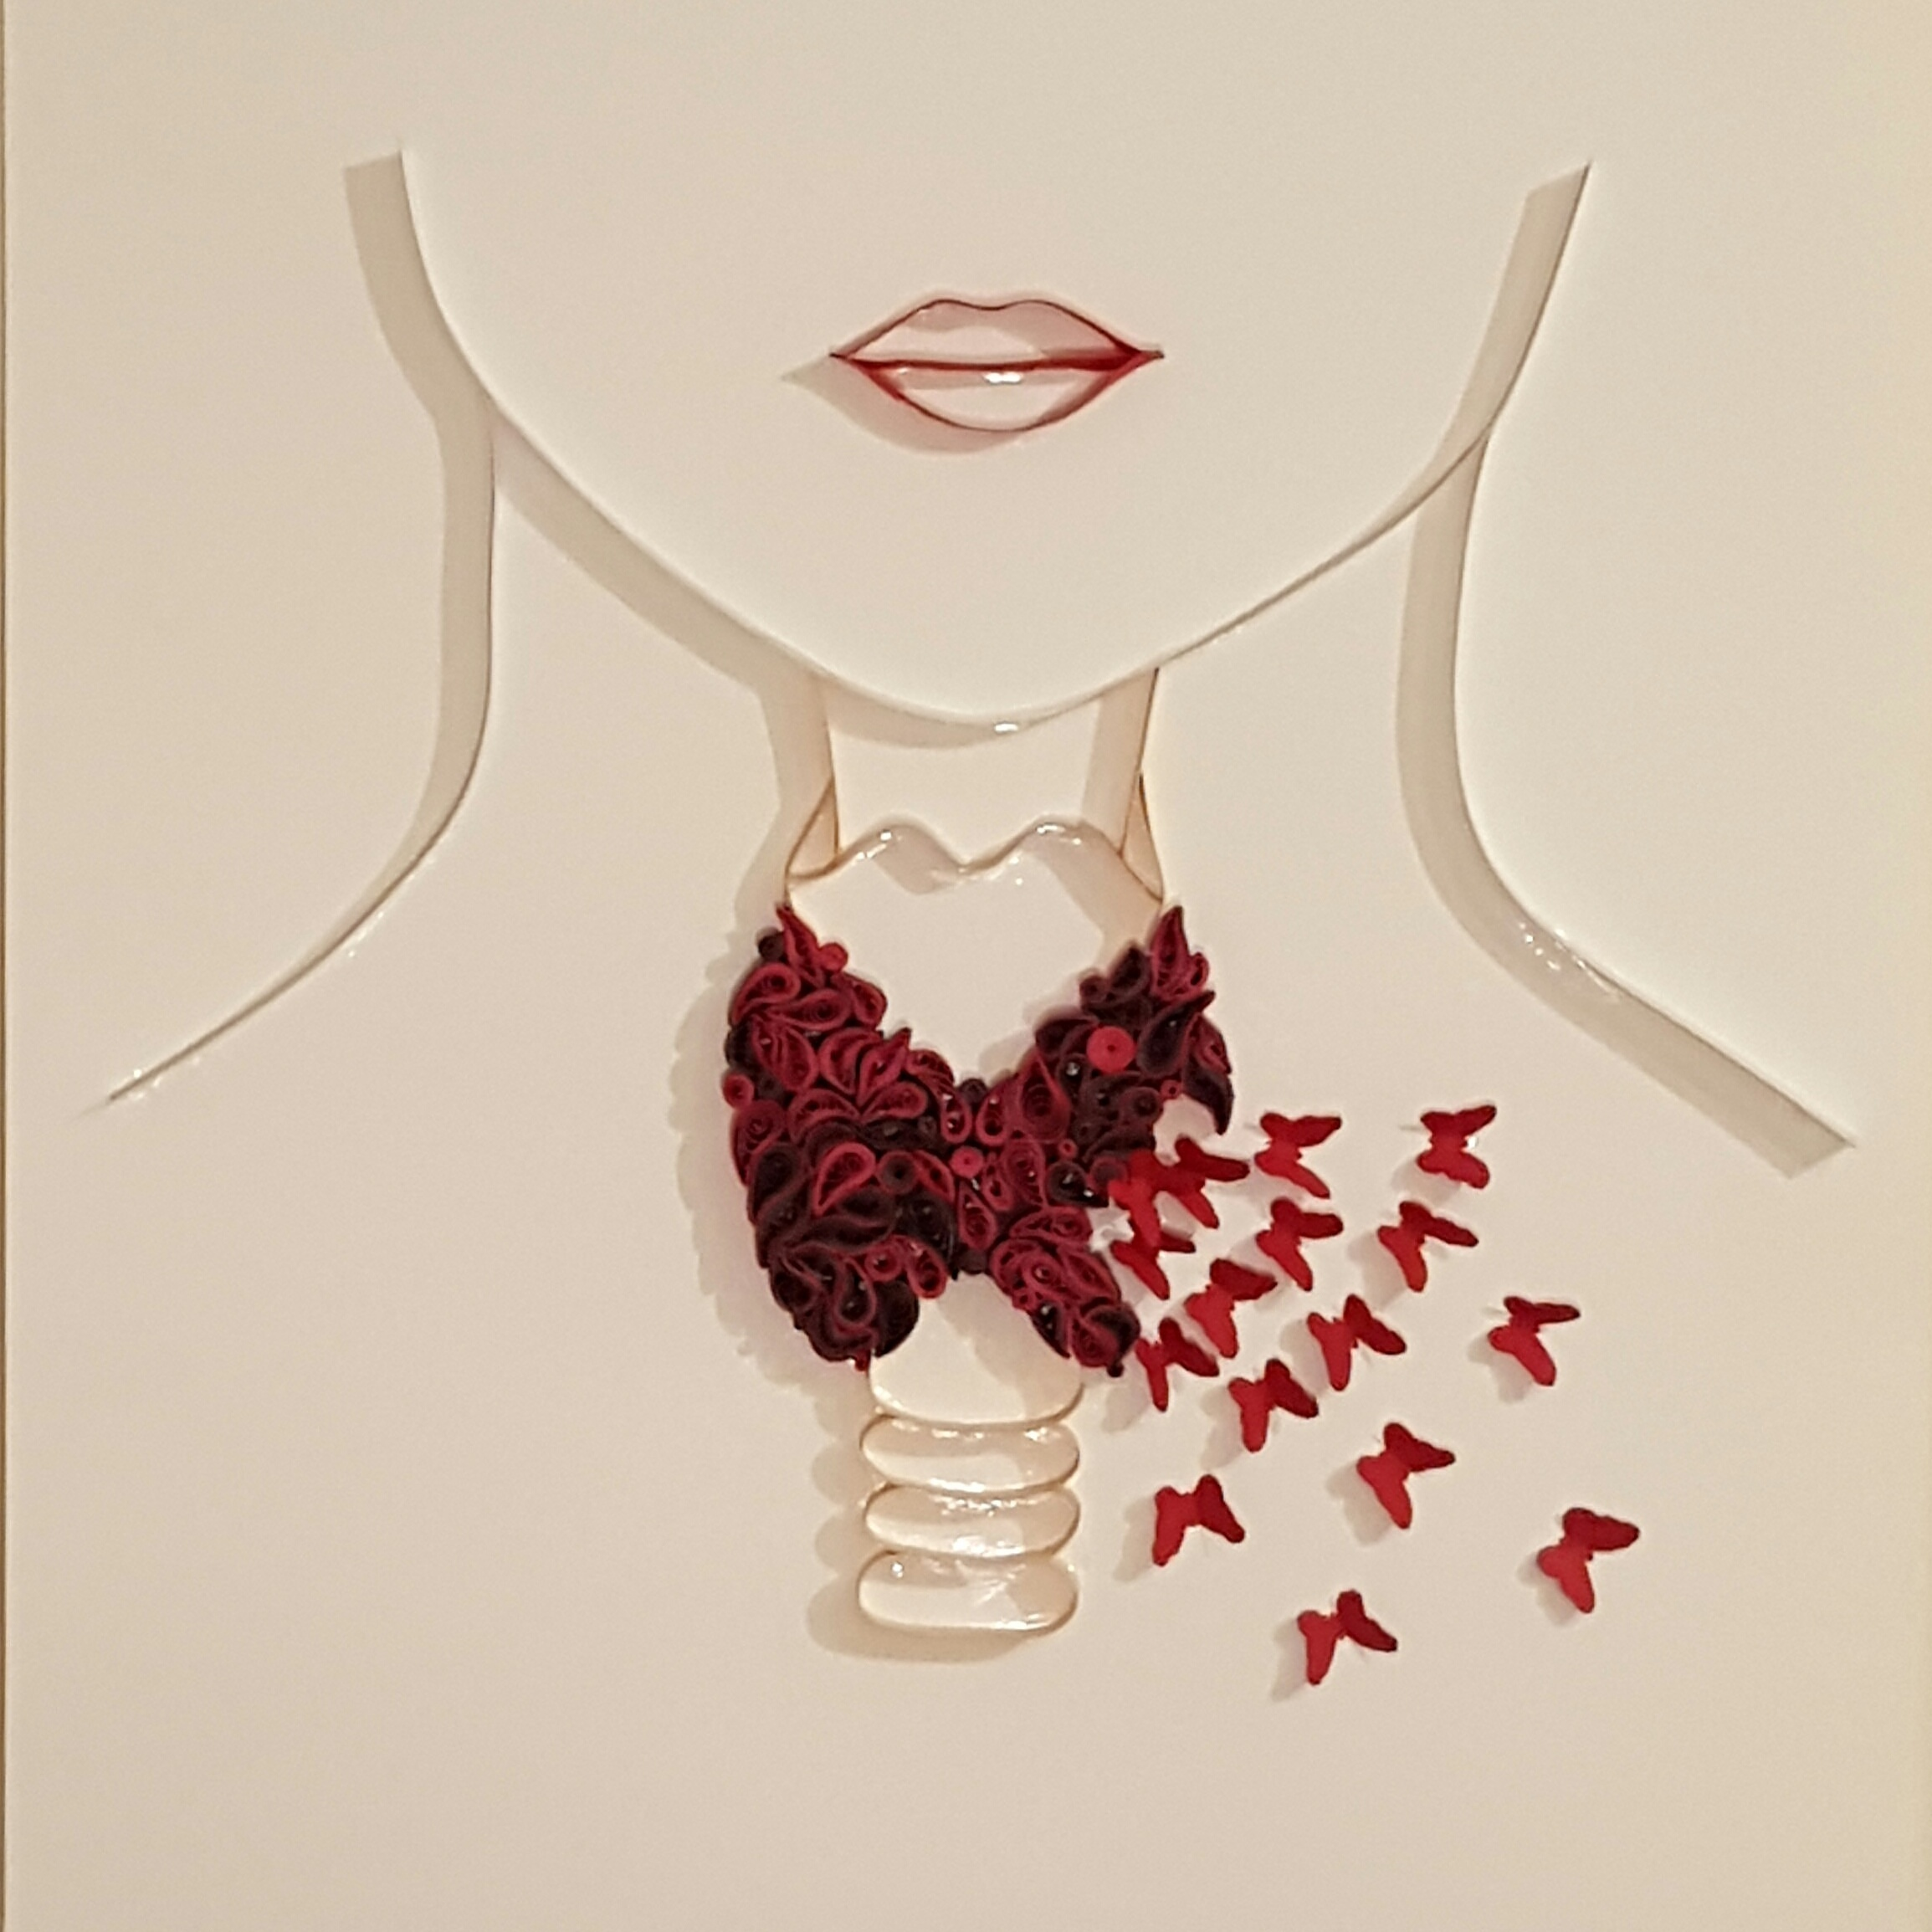 Thyroid / paper art